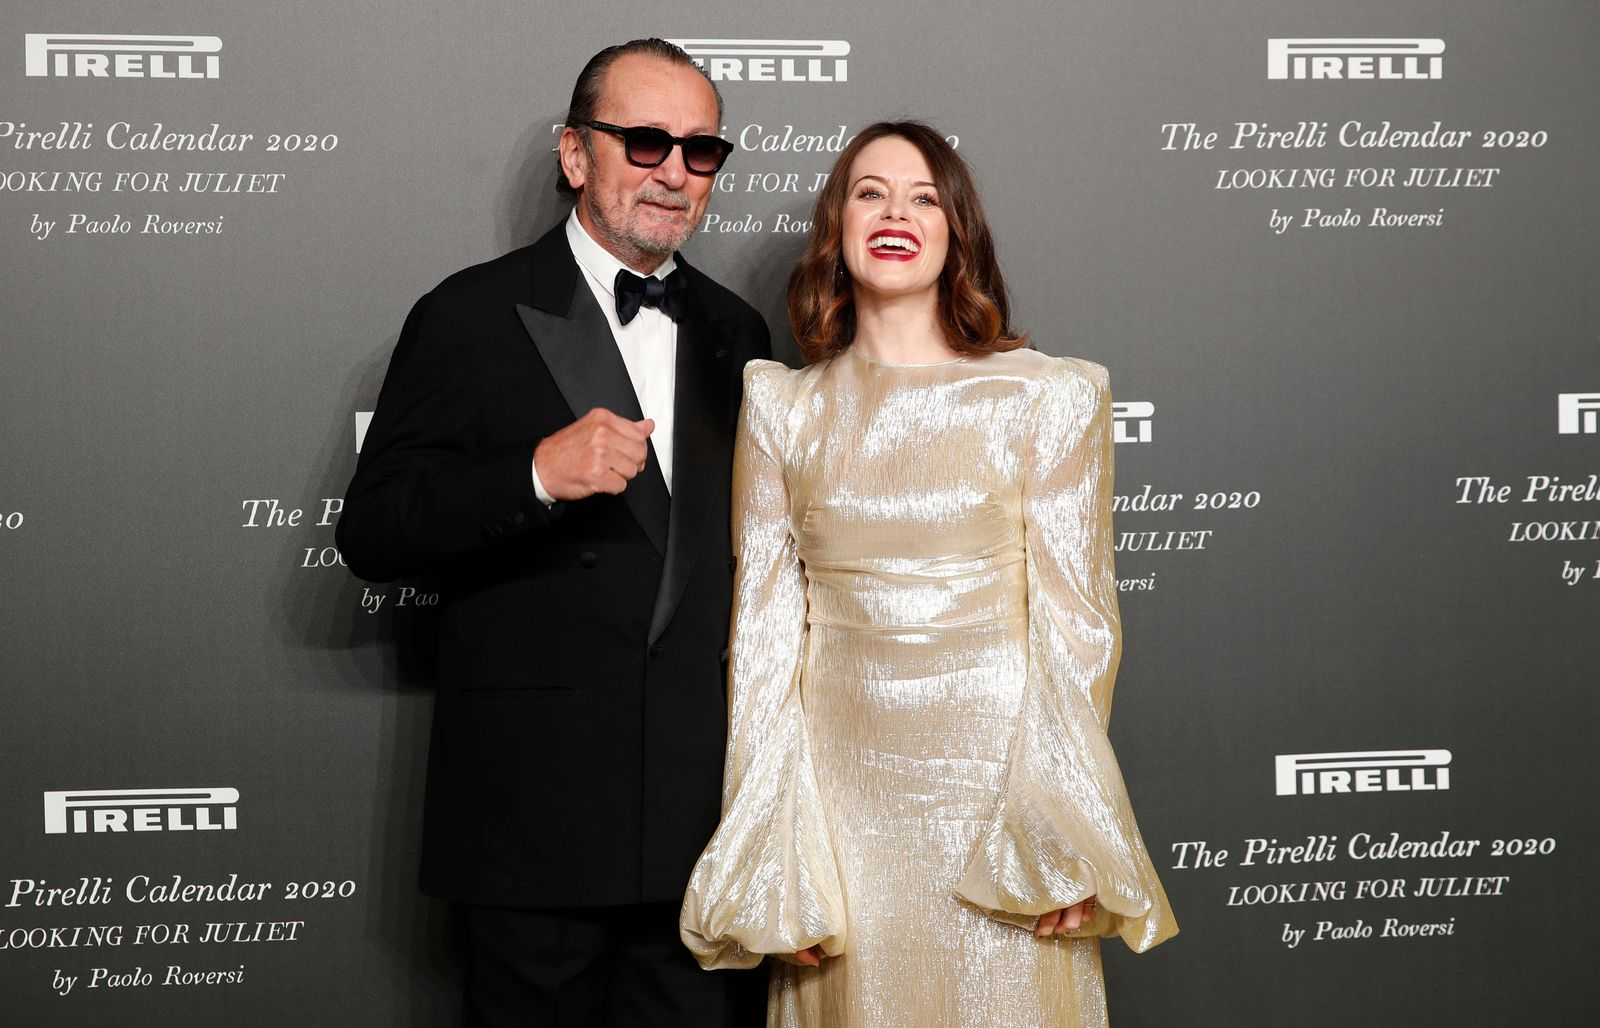 British actress Claire Foy, right, poses with Italian photographer Paolo Roversi, at the 2020 Pirelli Calendar event in Verona, Italy, Tuesday, Dec. 3, 2019. (AP Photo/Antonio Calanni)